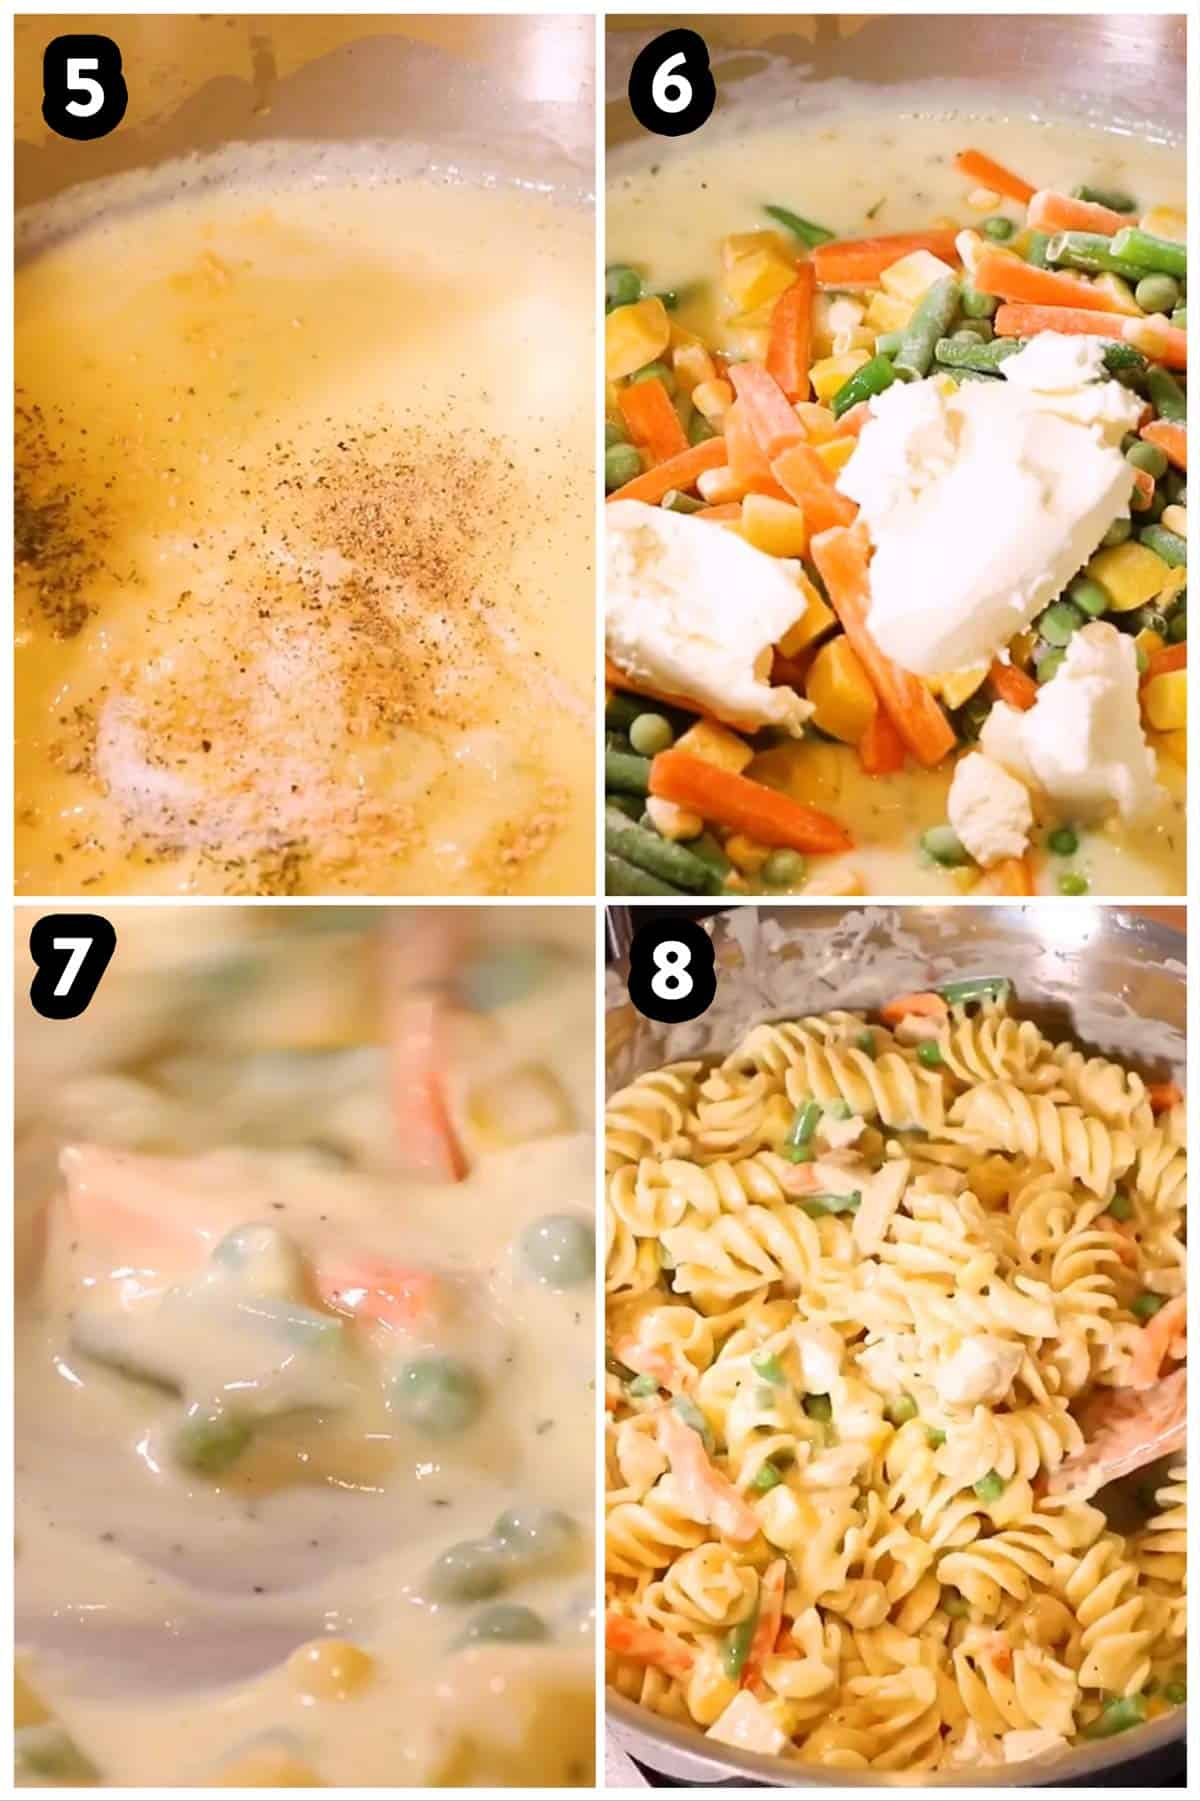 collage of photos to show preparing turkey and noodles